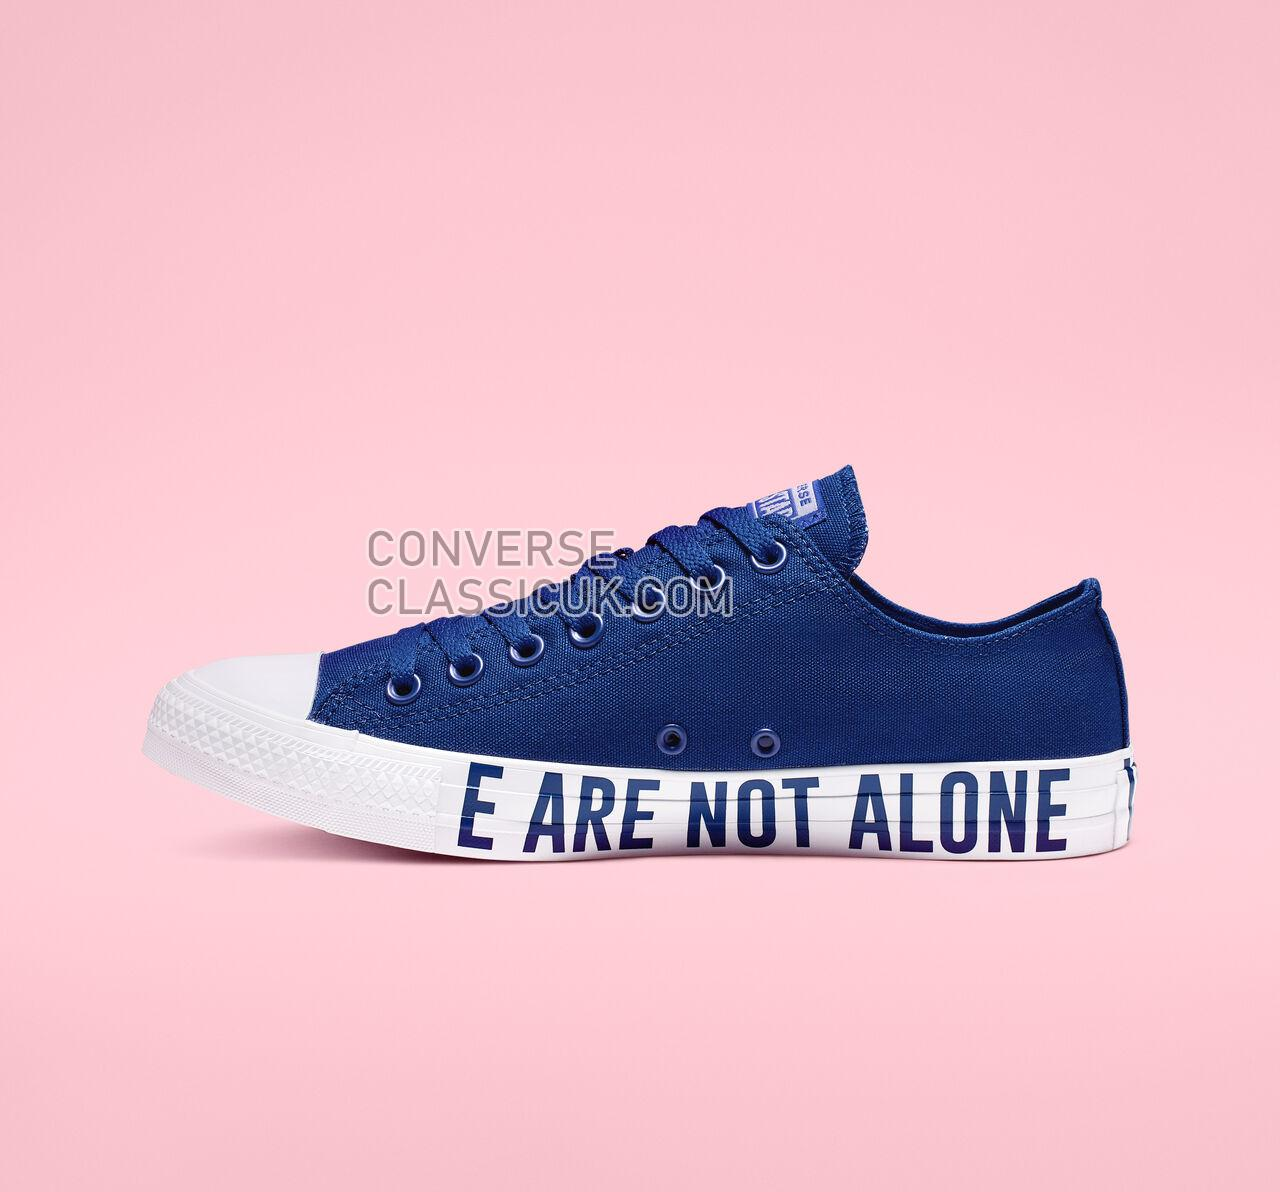 Converse Chuck Taylor All Star We Are Not Alone Low Top Mens Womens Unisex 165383F Blue/Black/Blue Shoes